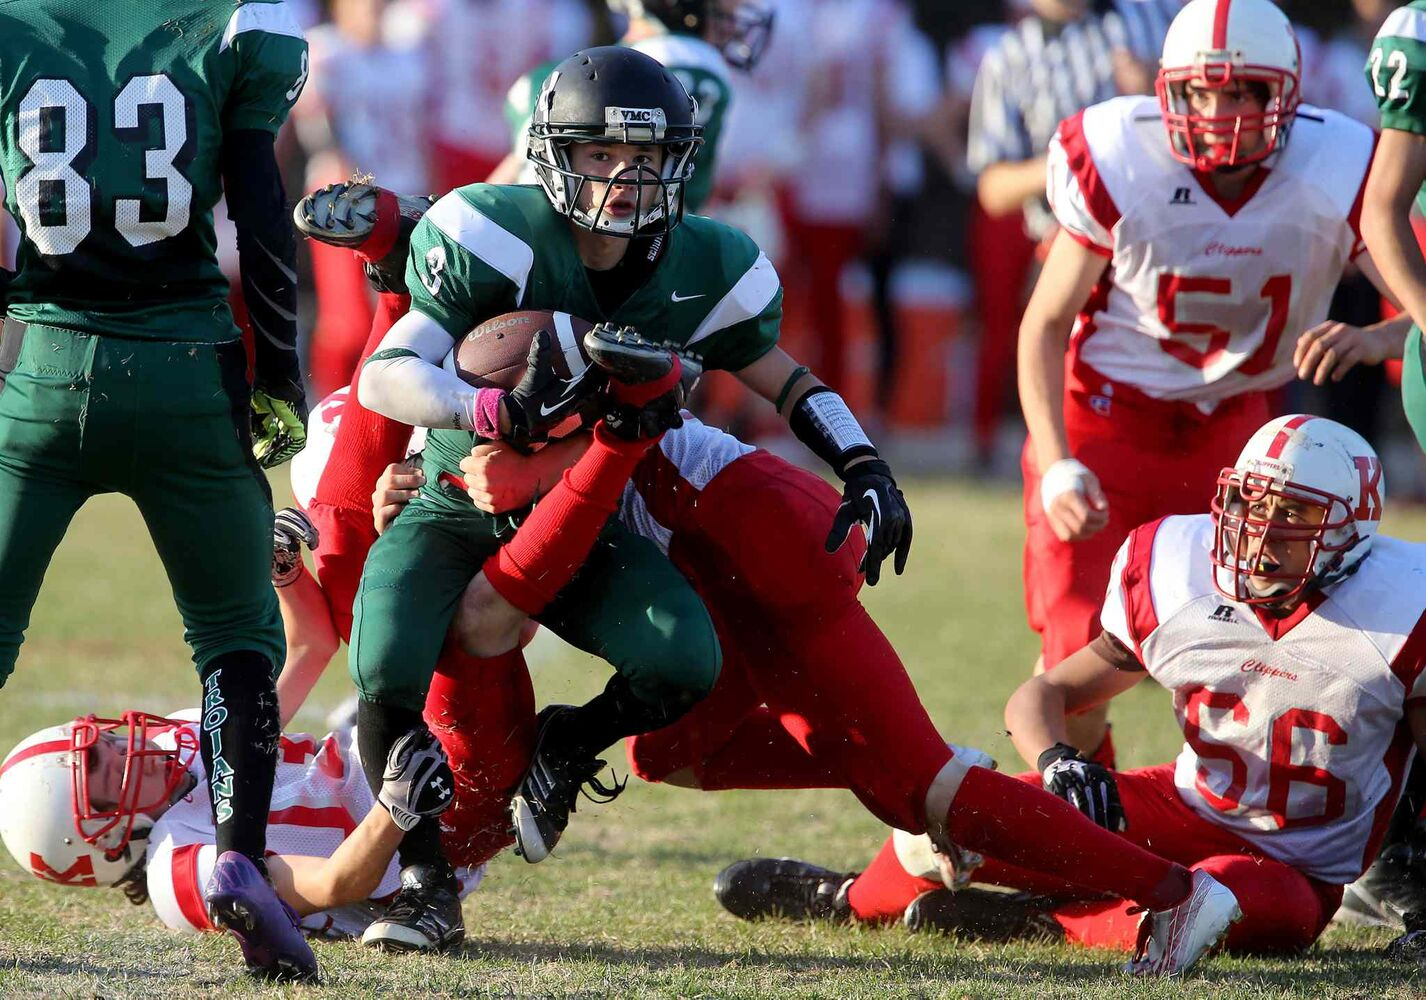 Matt Lemay of the Vincent Massey Trojans is tackled by a gang of Kelvin Clippers.